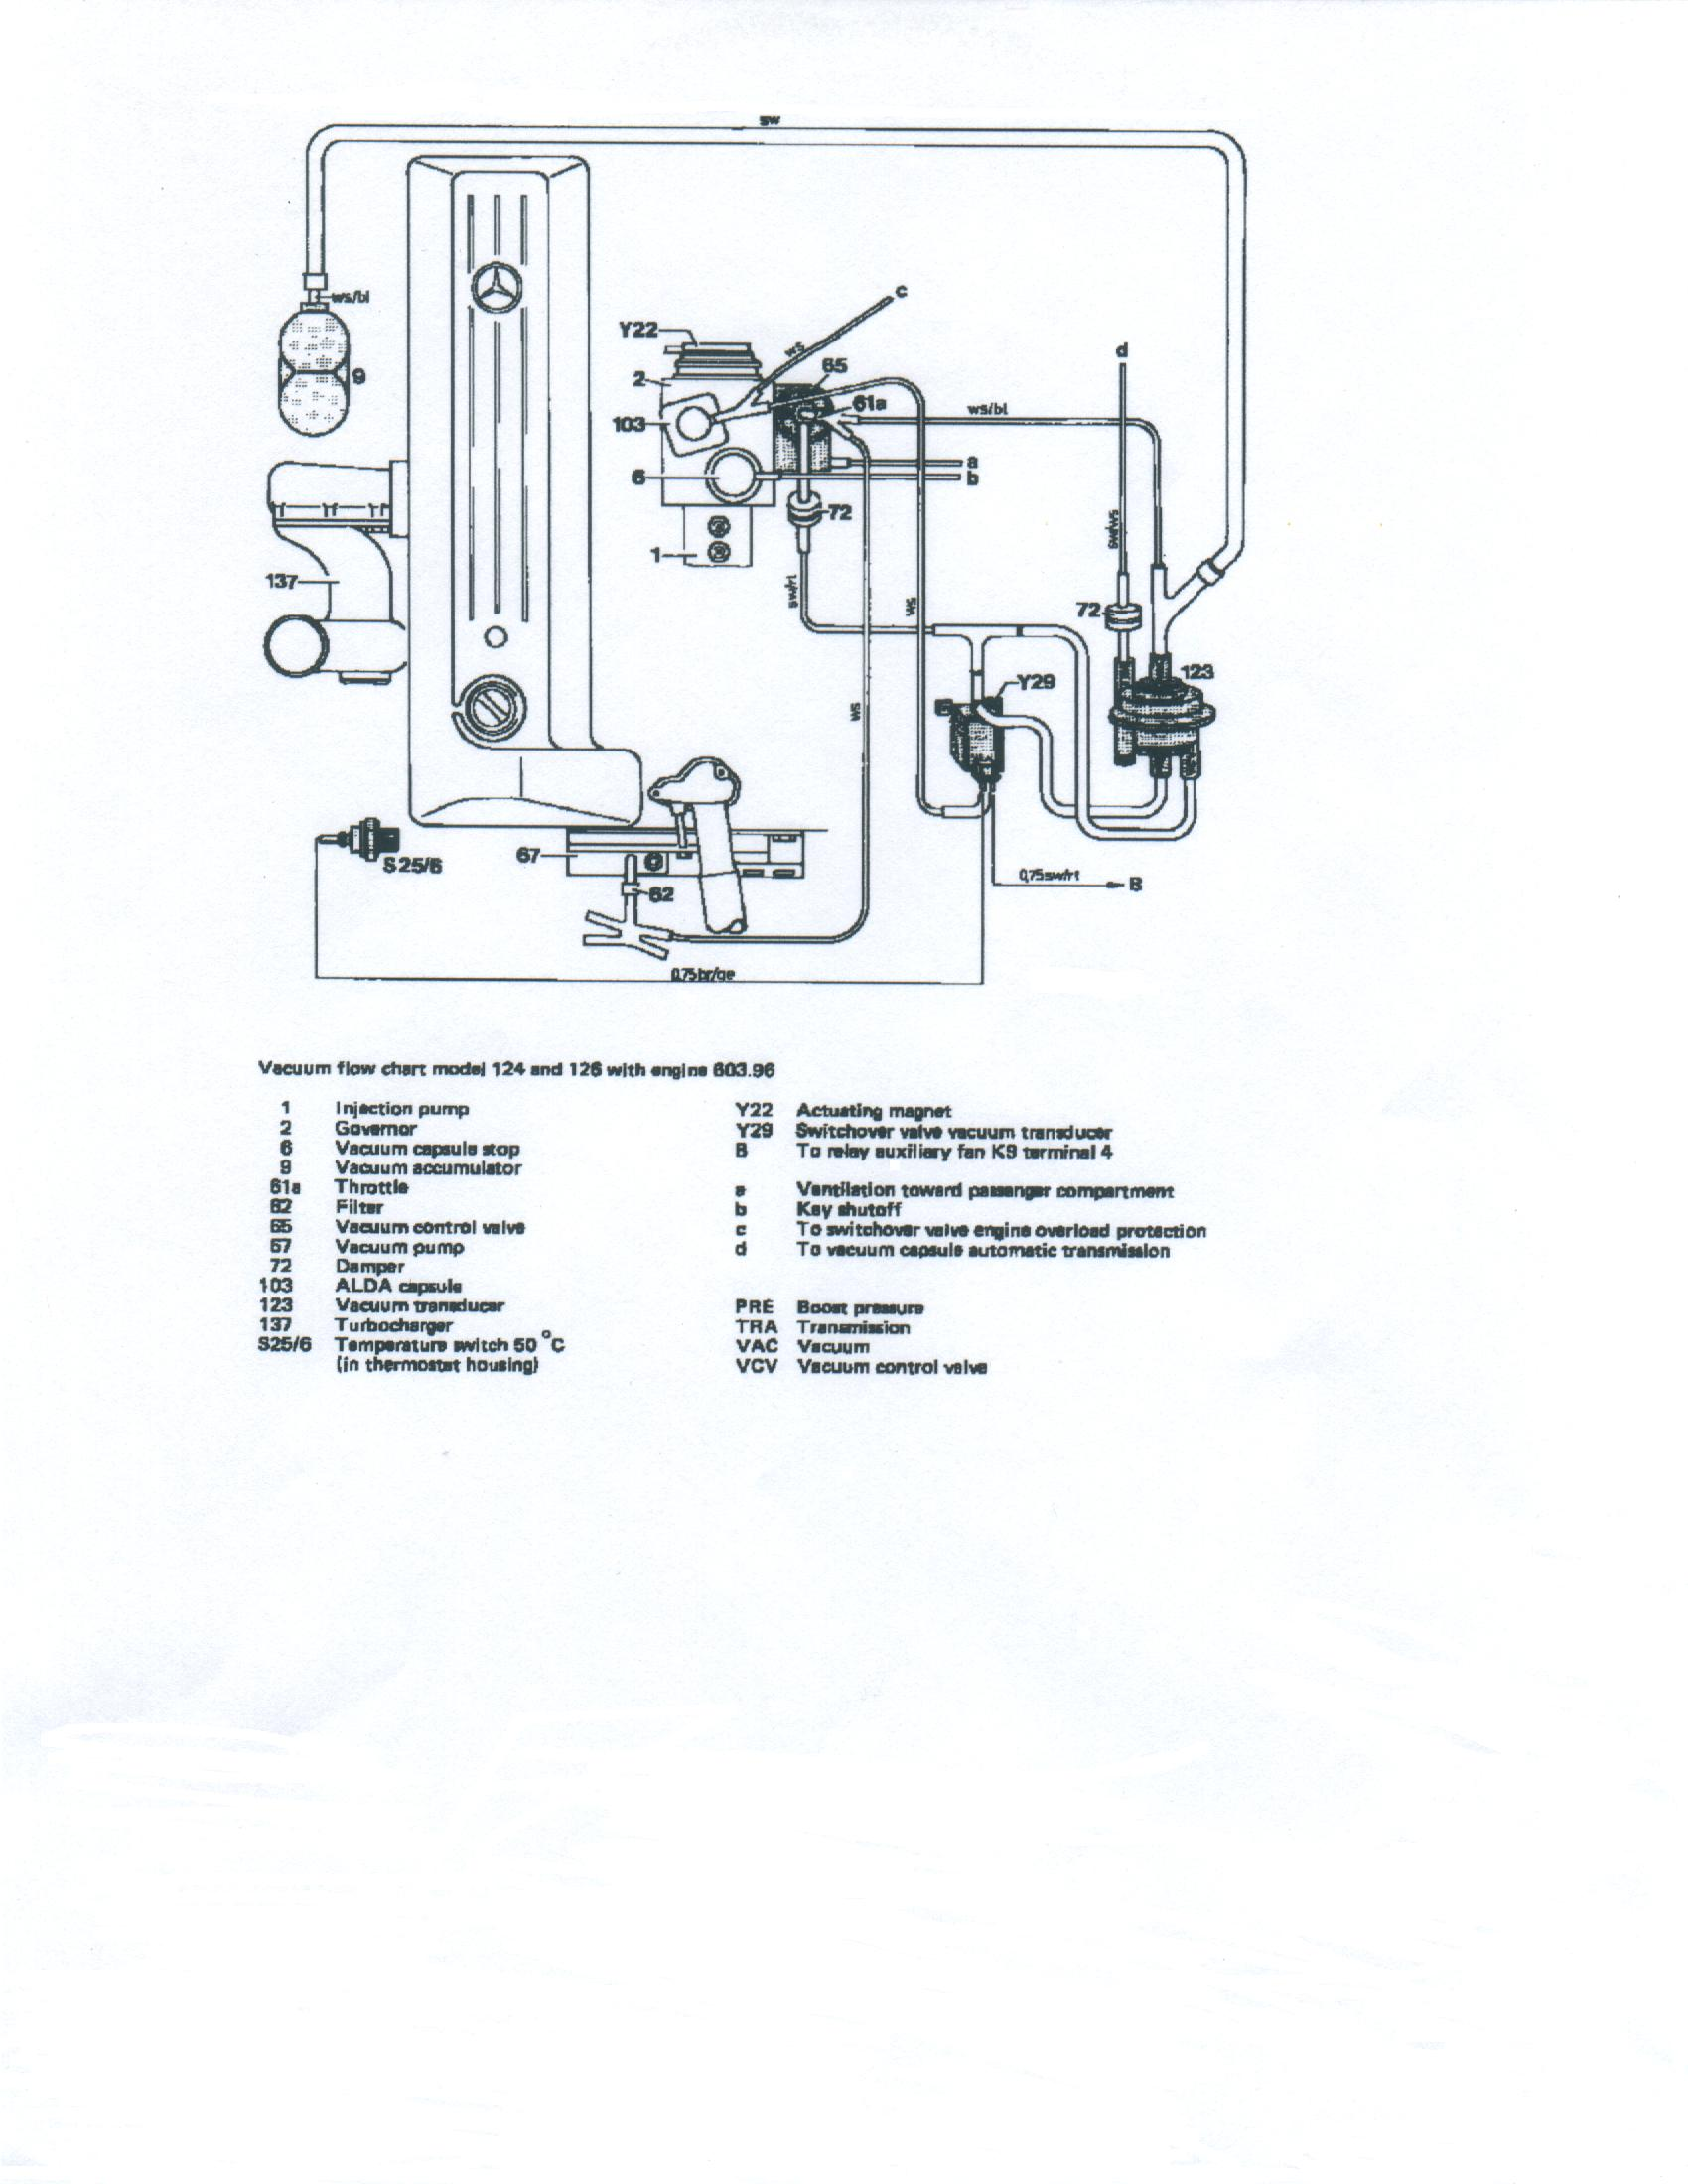 [WRG-1178] W115 Wiring Diagram